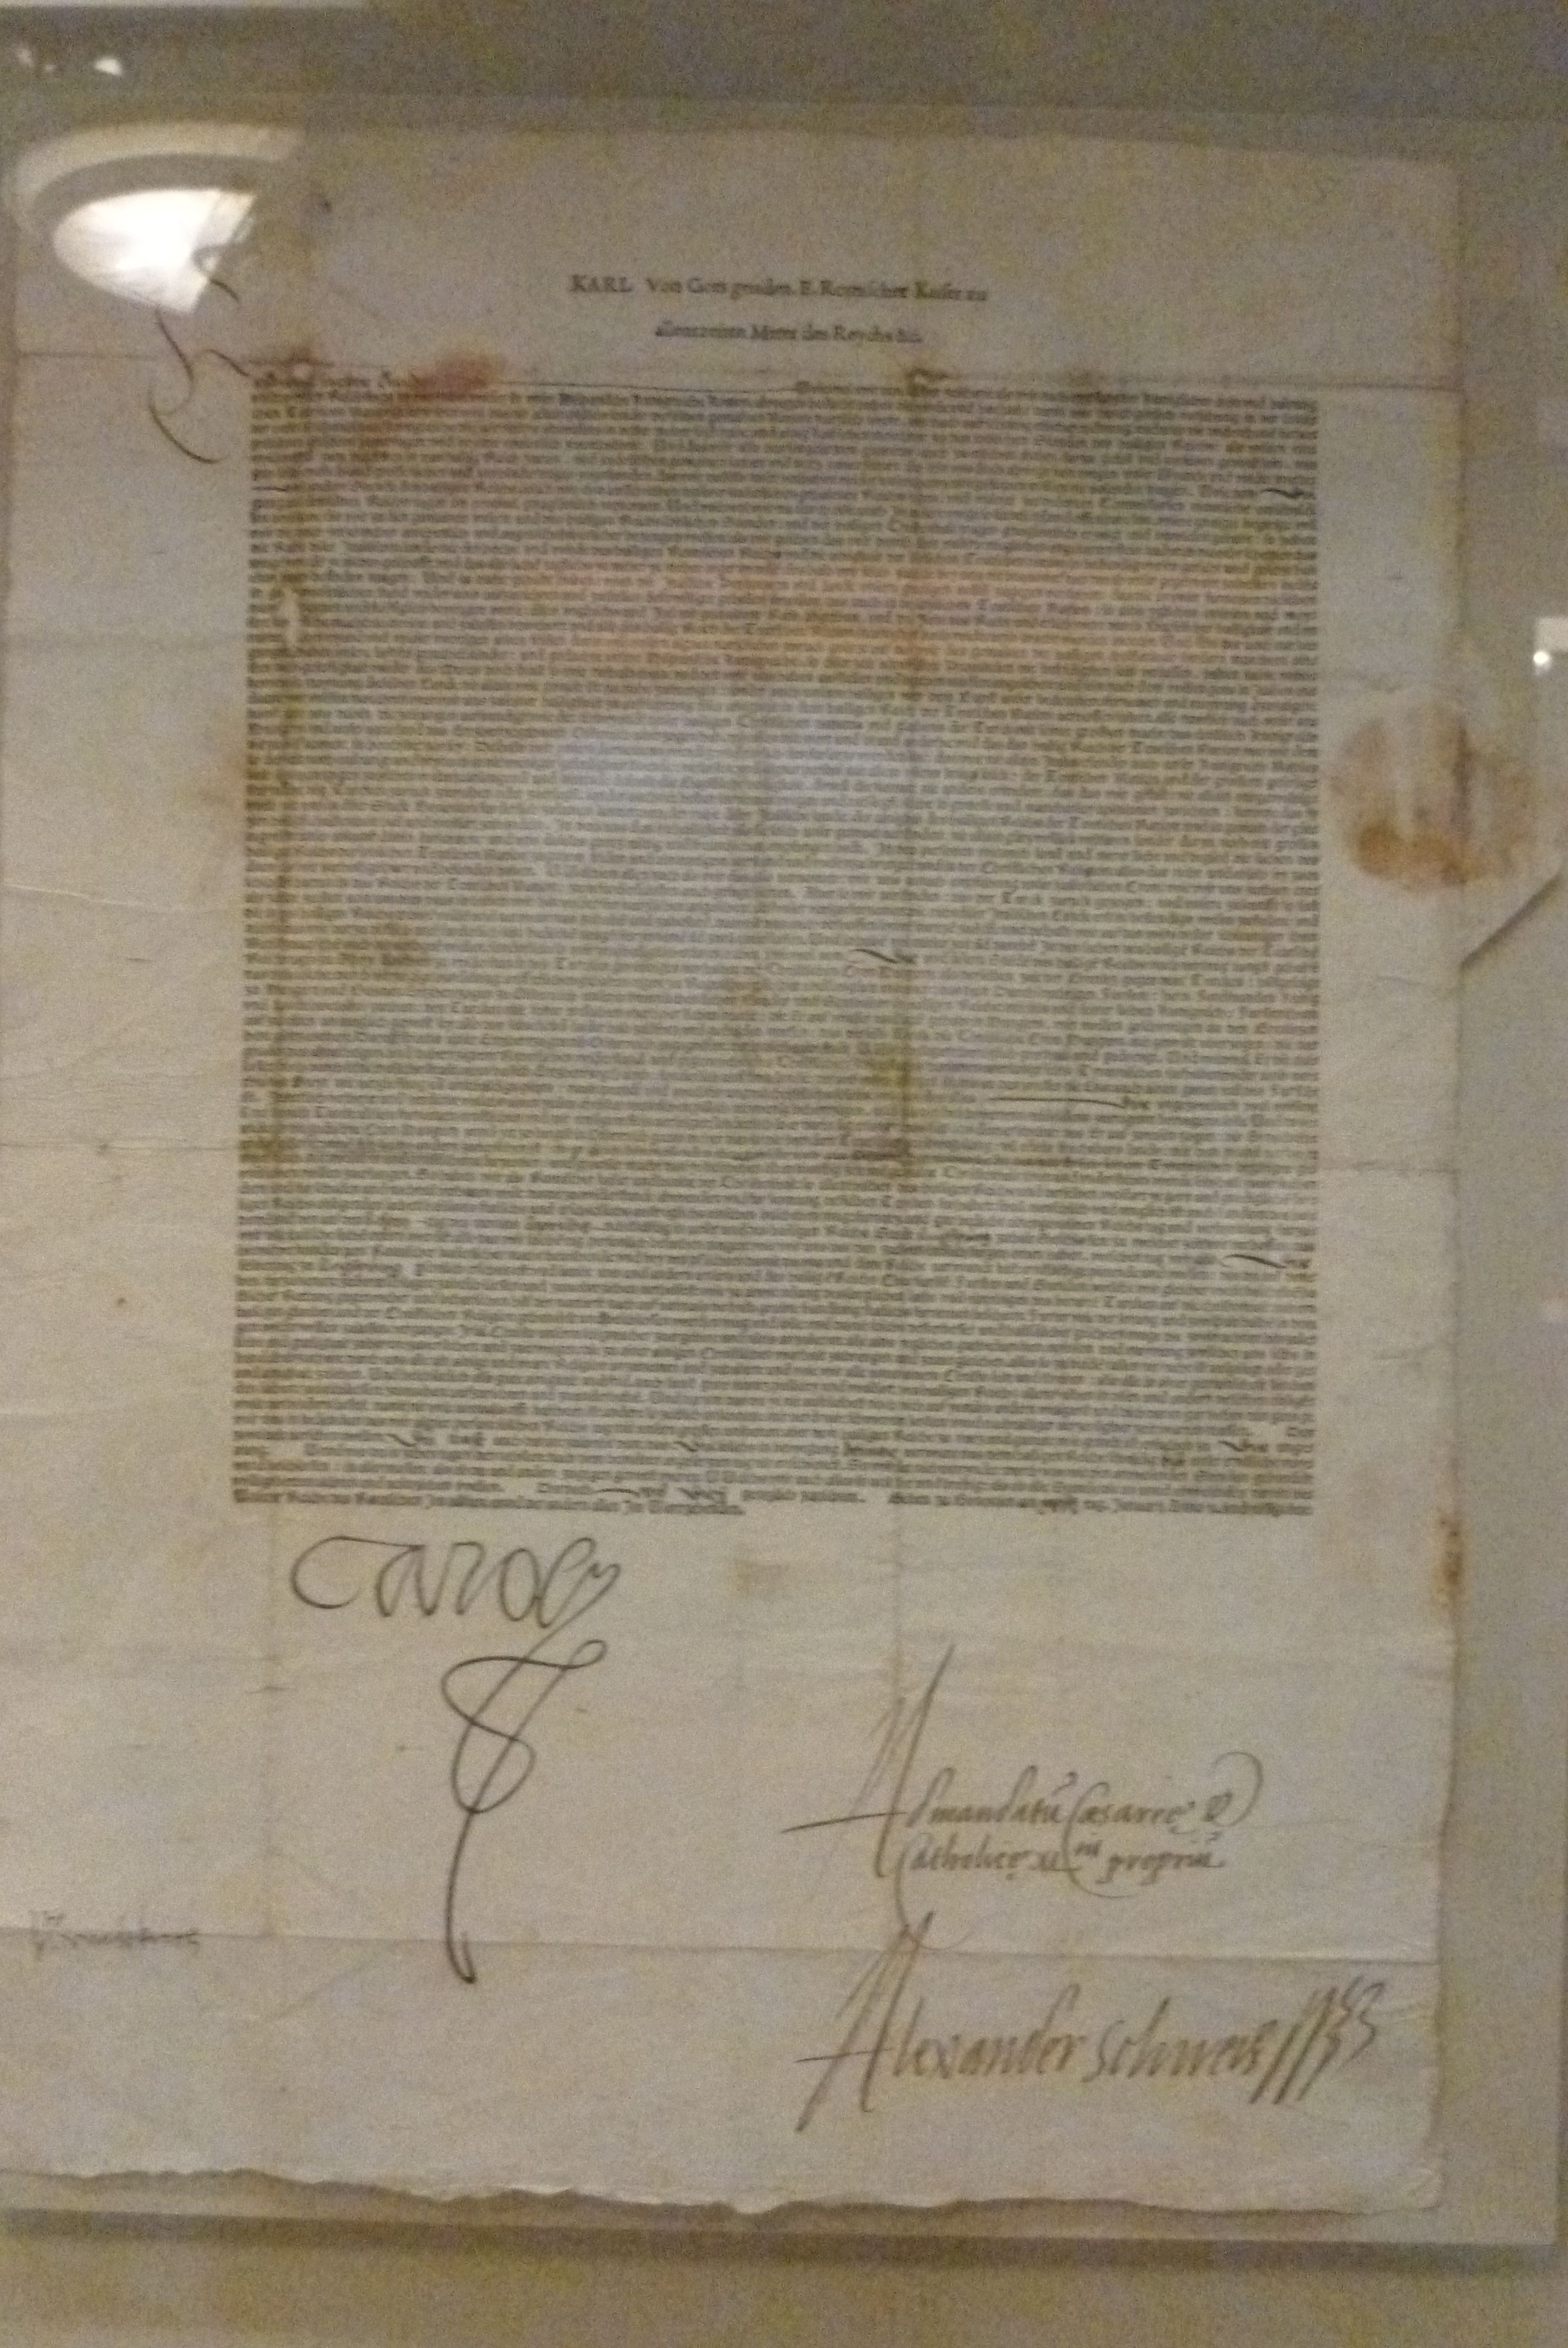 The Augsburg Confession. Wittenberg 1551. (Deutsche Historisches Museum)